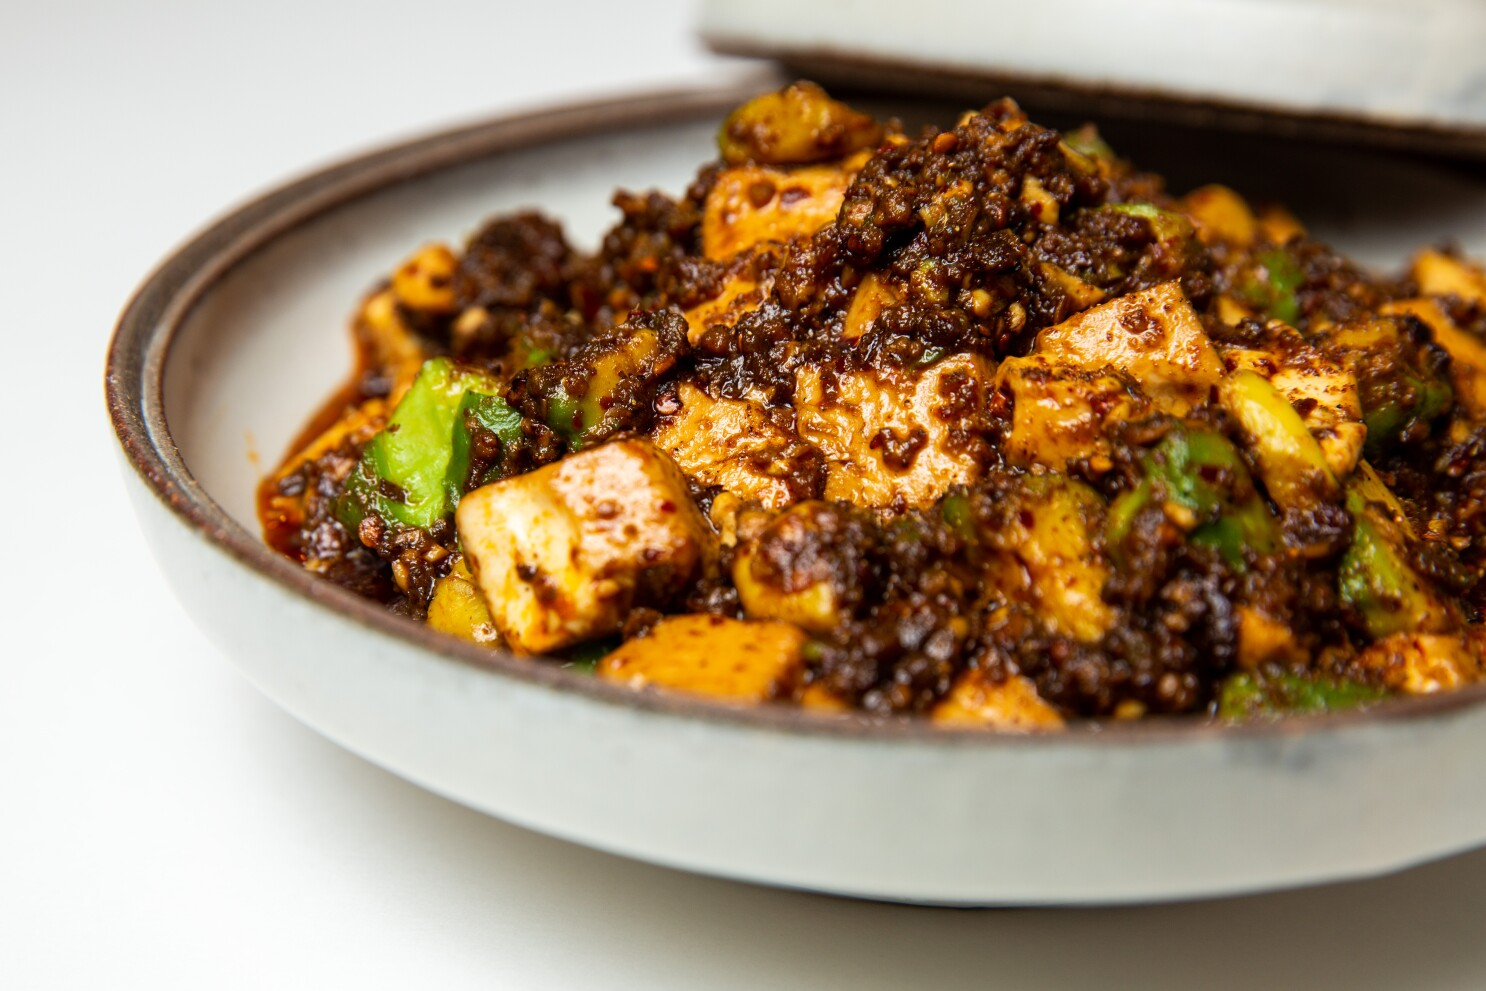 The ultimate mapo tofu recipe has a California twist